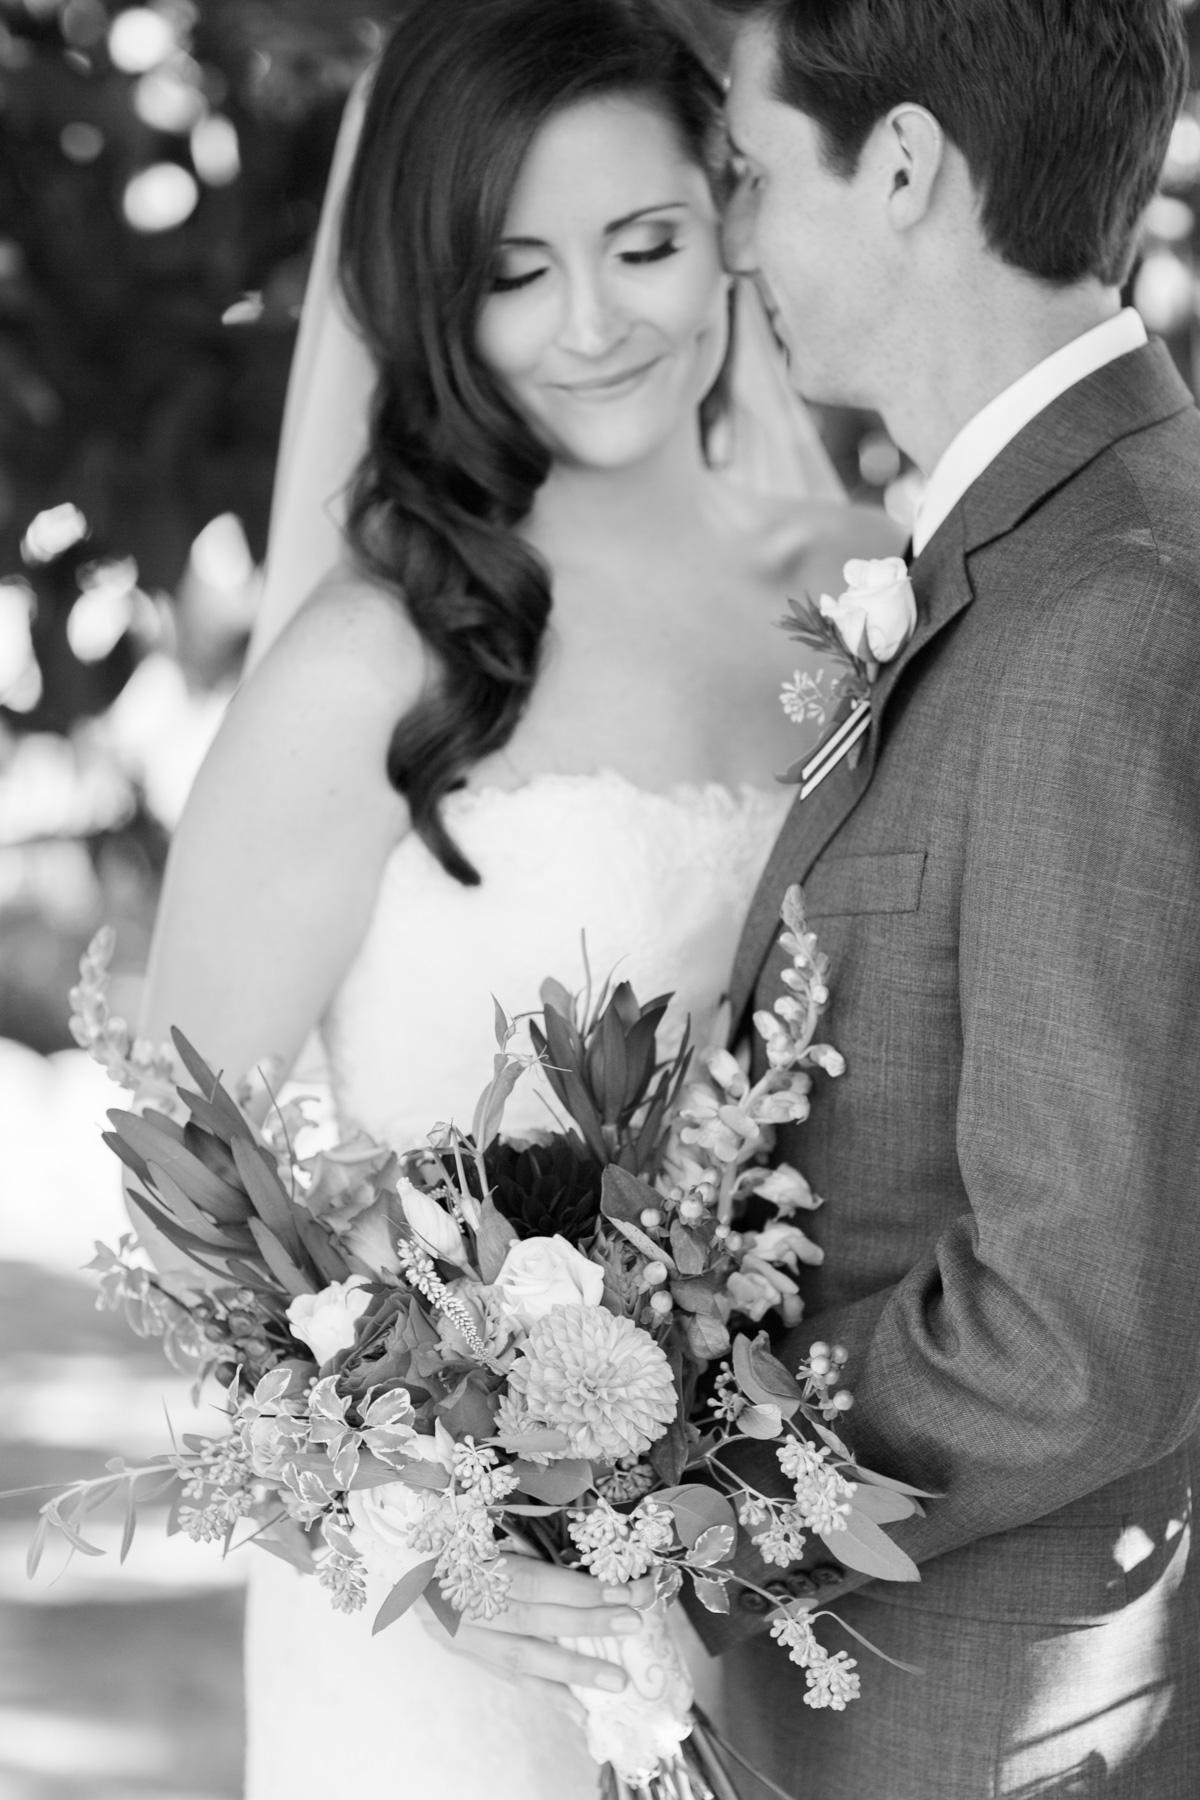 Classic black and white portrait of a bride and groom